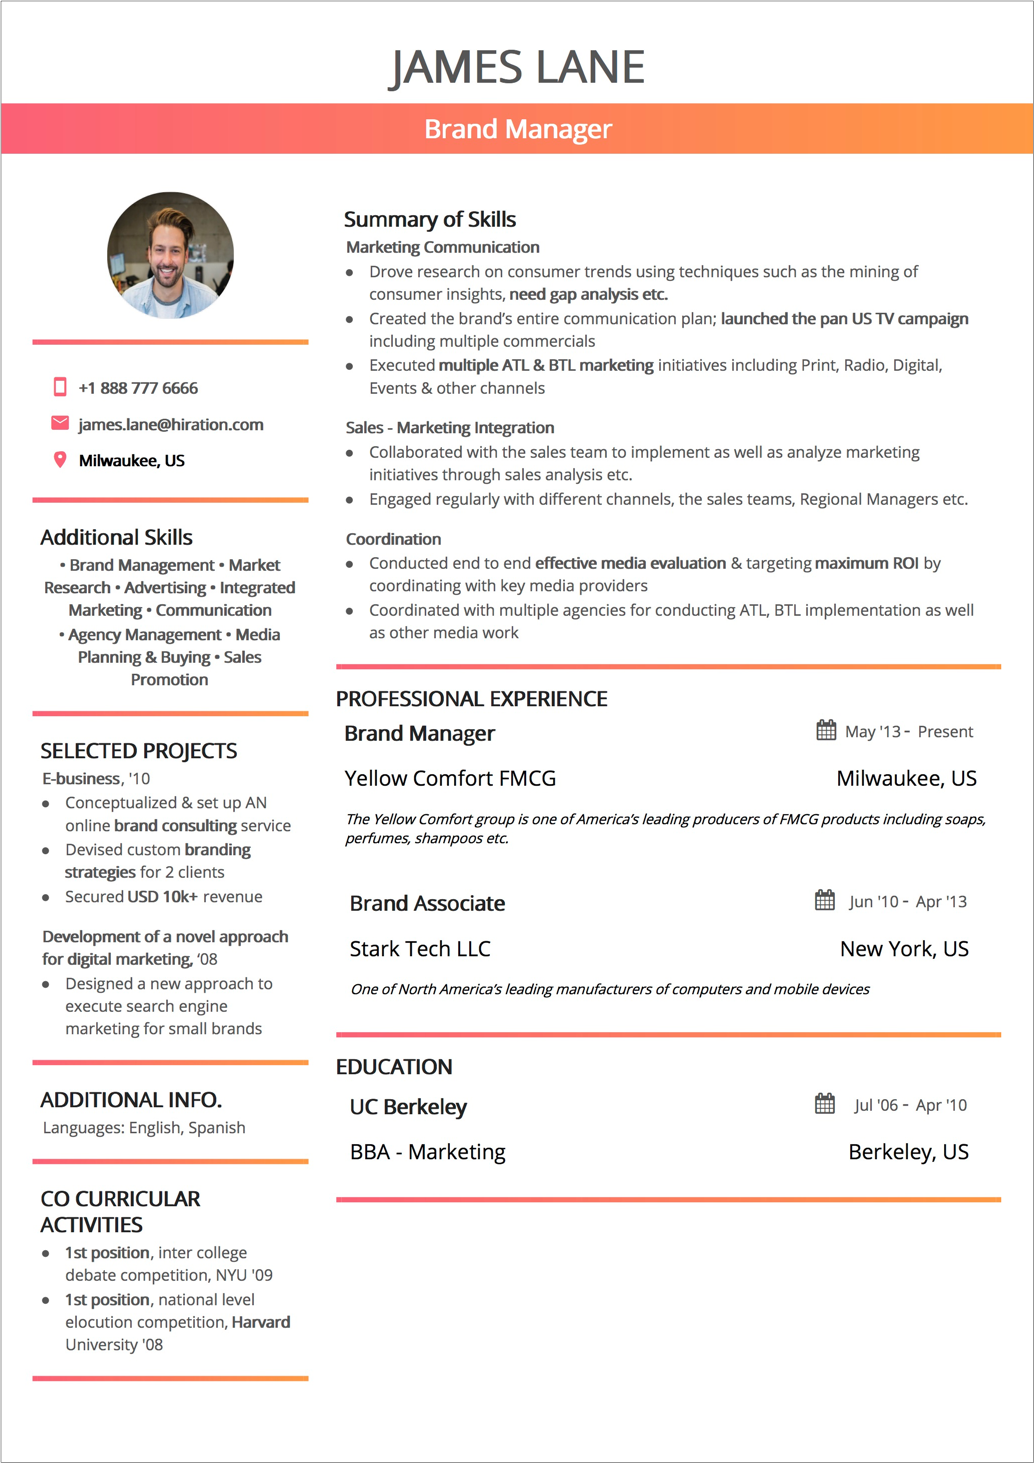 Functional Resume - The 2019 Guide to Functional Resumes